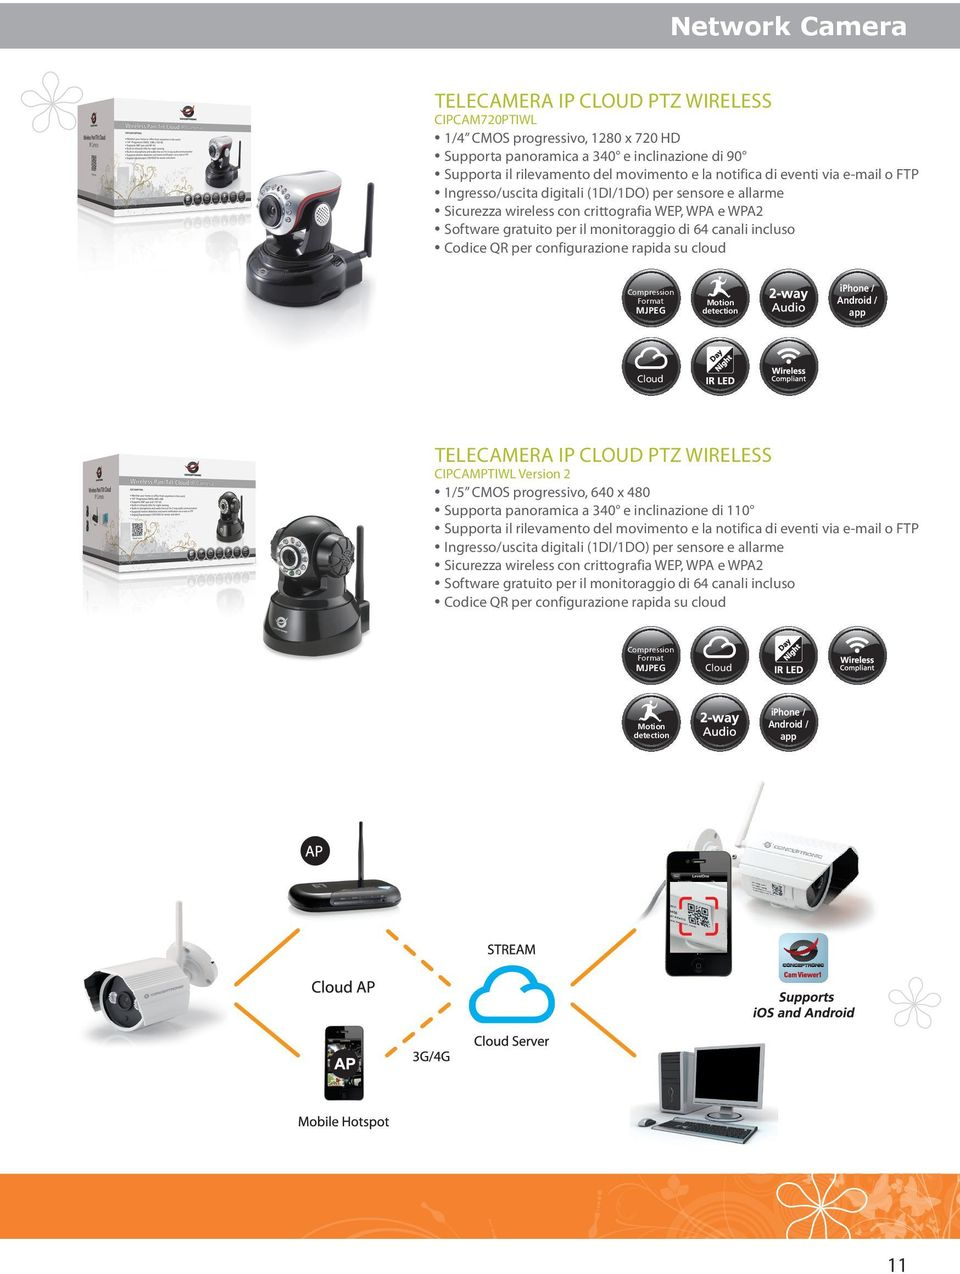 Codice QR per configurazione rapida su cloud Compression Format MJPEG iphone / Android / app Motion detection TELECAMERA IP CLOUD PTZ WIRELESS CIPCAMPTIWL Version 2 1/5 CMOS progressivo, 640 x 480